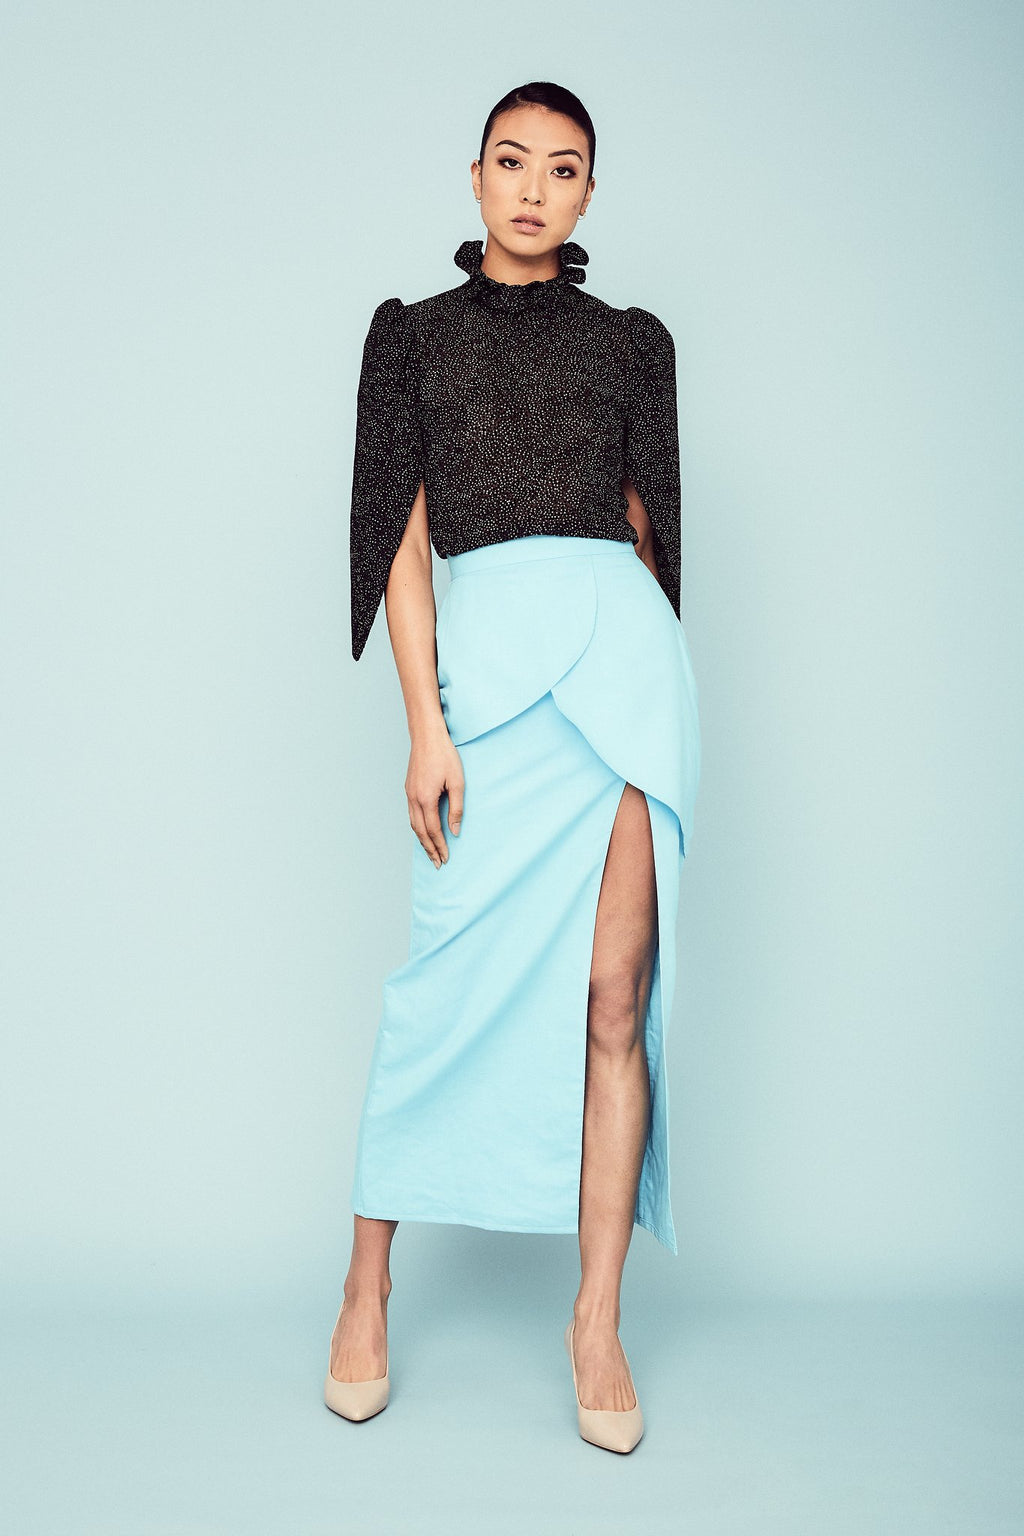 Aqua Divina Skirt Skirts The Fashion Advocate ethical Australian fashion designer boutique Melbourne sustainable clothes